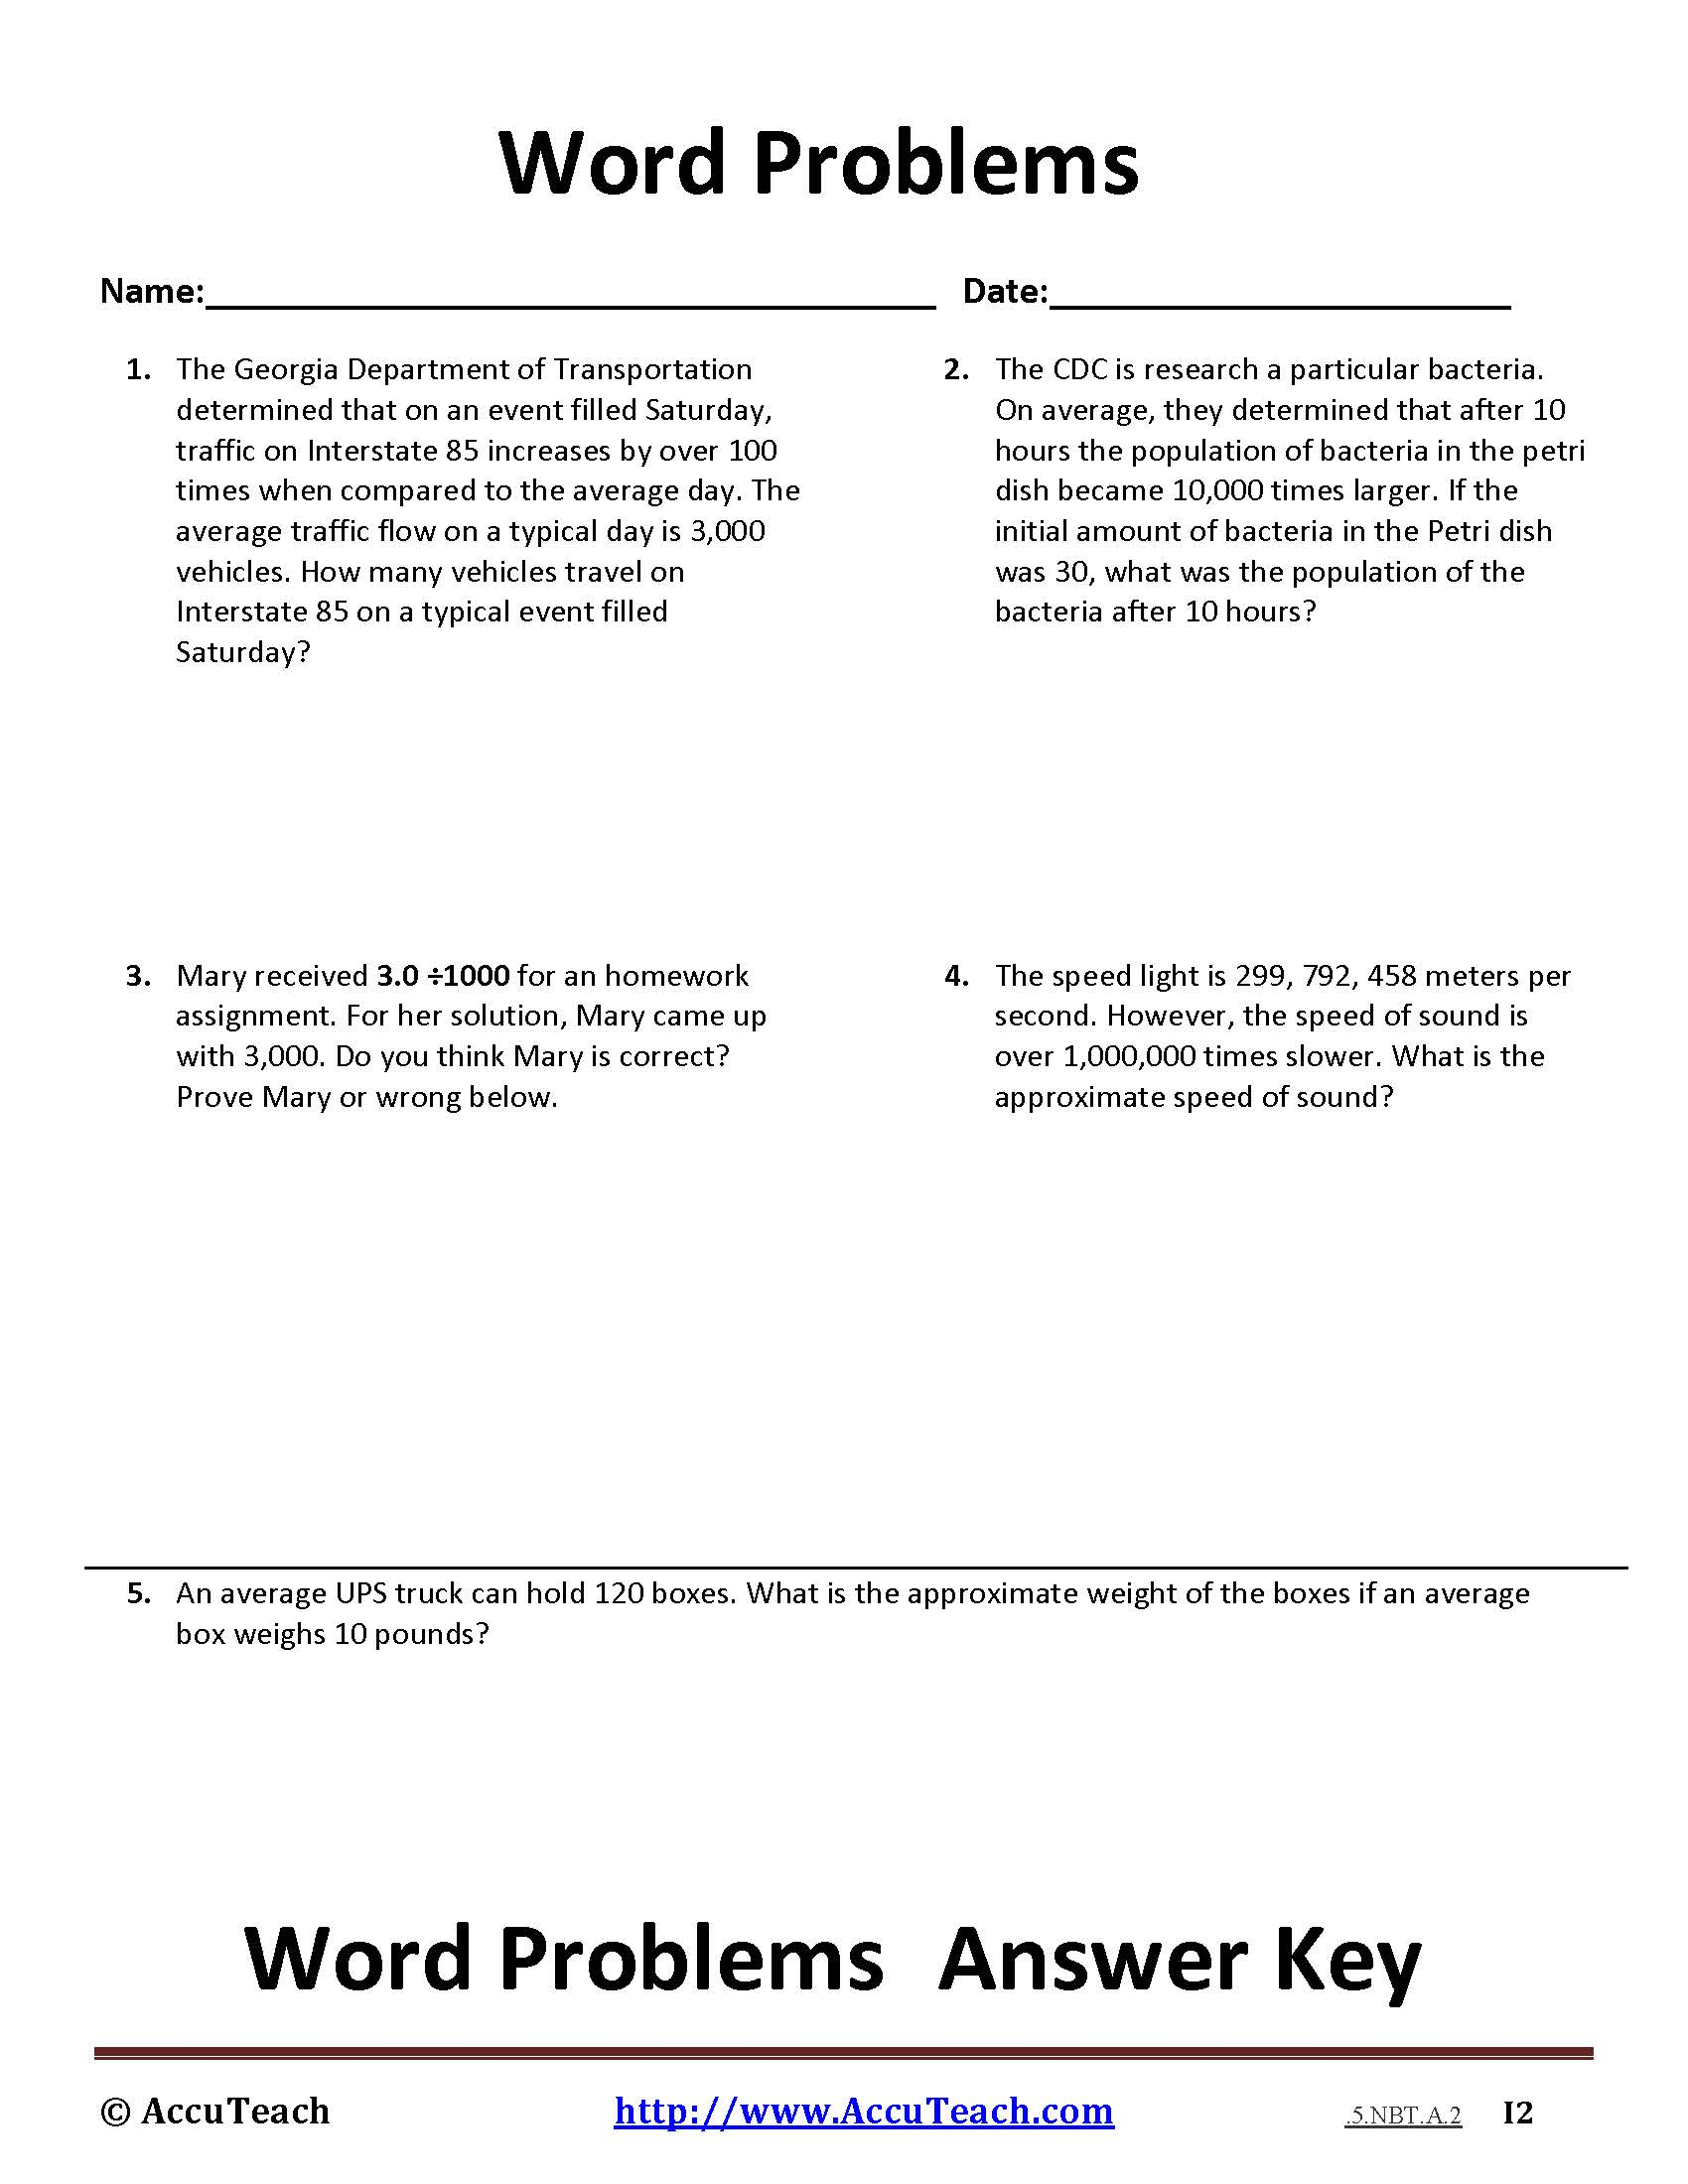 Worksheet Dividing Decimals By Whole Numbers Word Problems dividing decimals word problems worksheet multiplication 5 nbt a 2 common core story activity sheet 7 accuteach